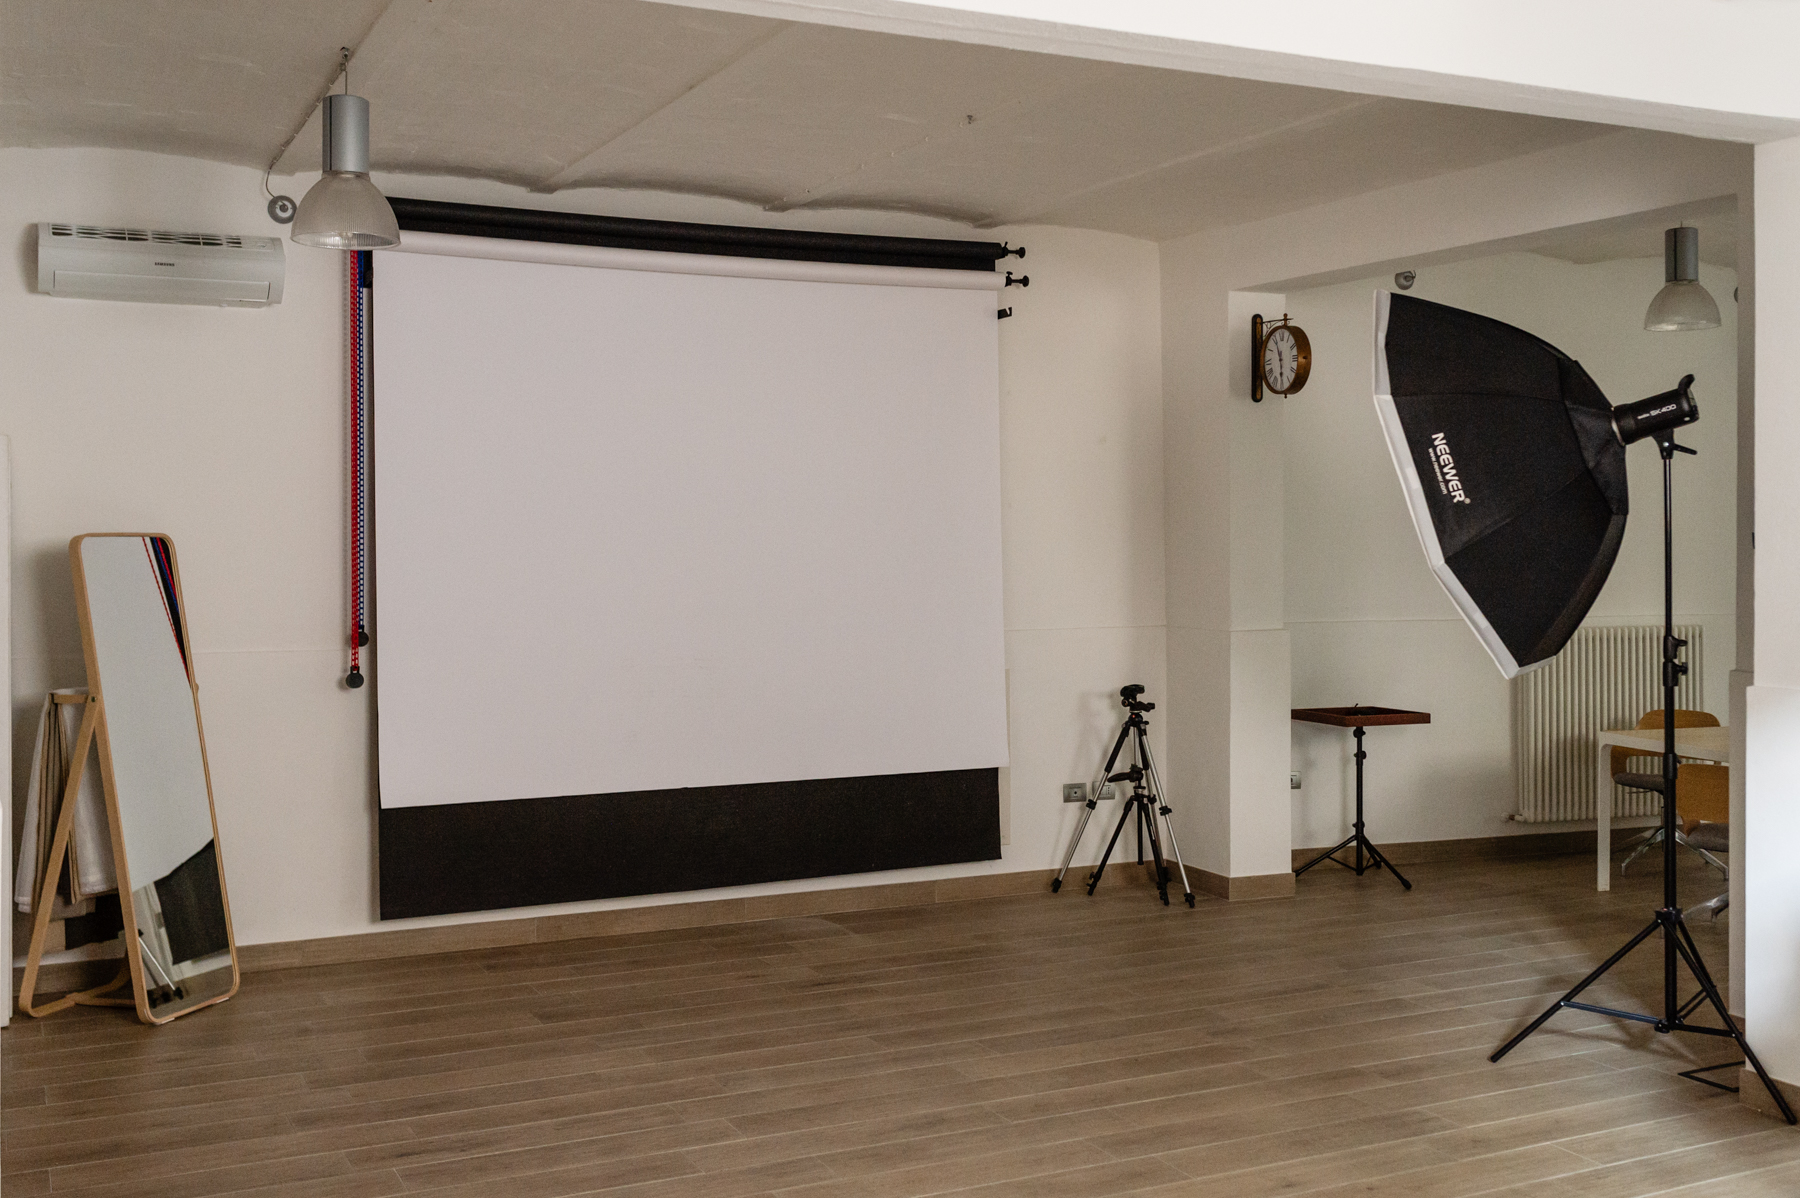 The image of a photographic studio in Ferrara, Italy